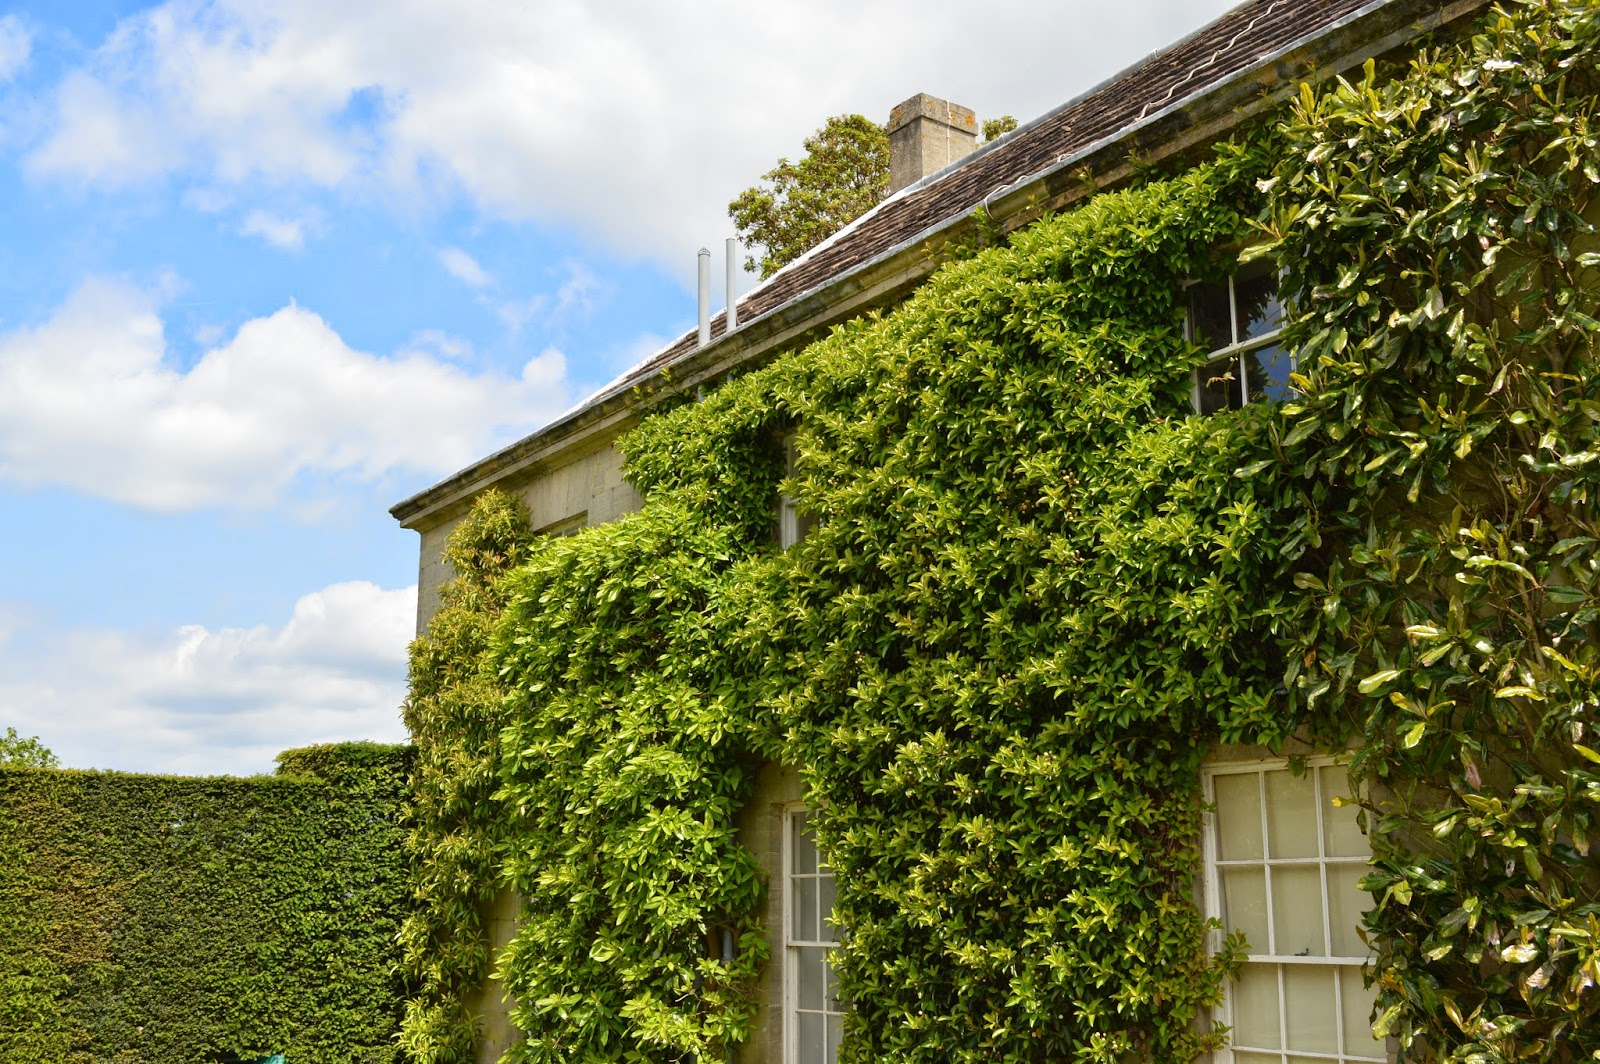 photograph, photo Petworth House and Gardens, review, visit, National Trust, west Sussex, historical home, building, 17th century, property, Percy family, England, servants quarters, house covered in foliage